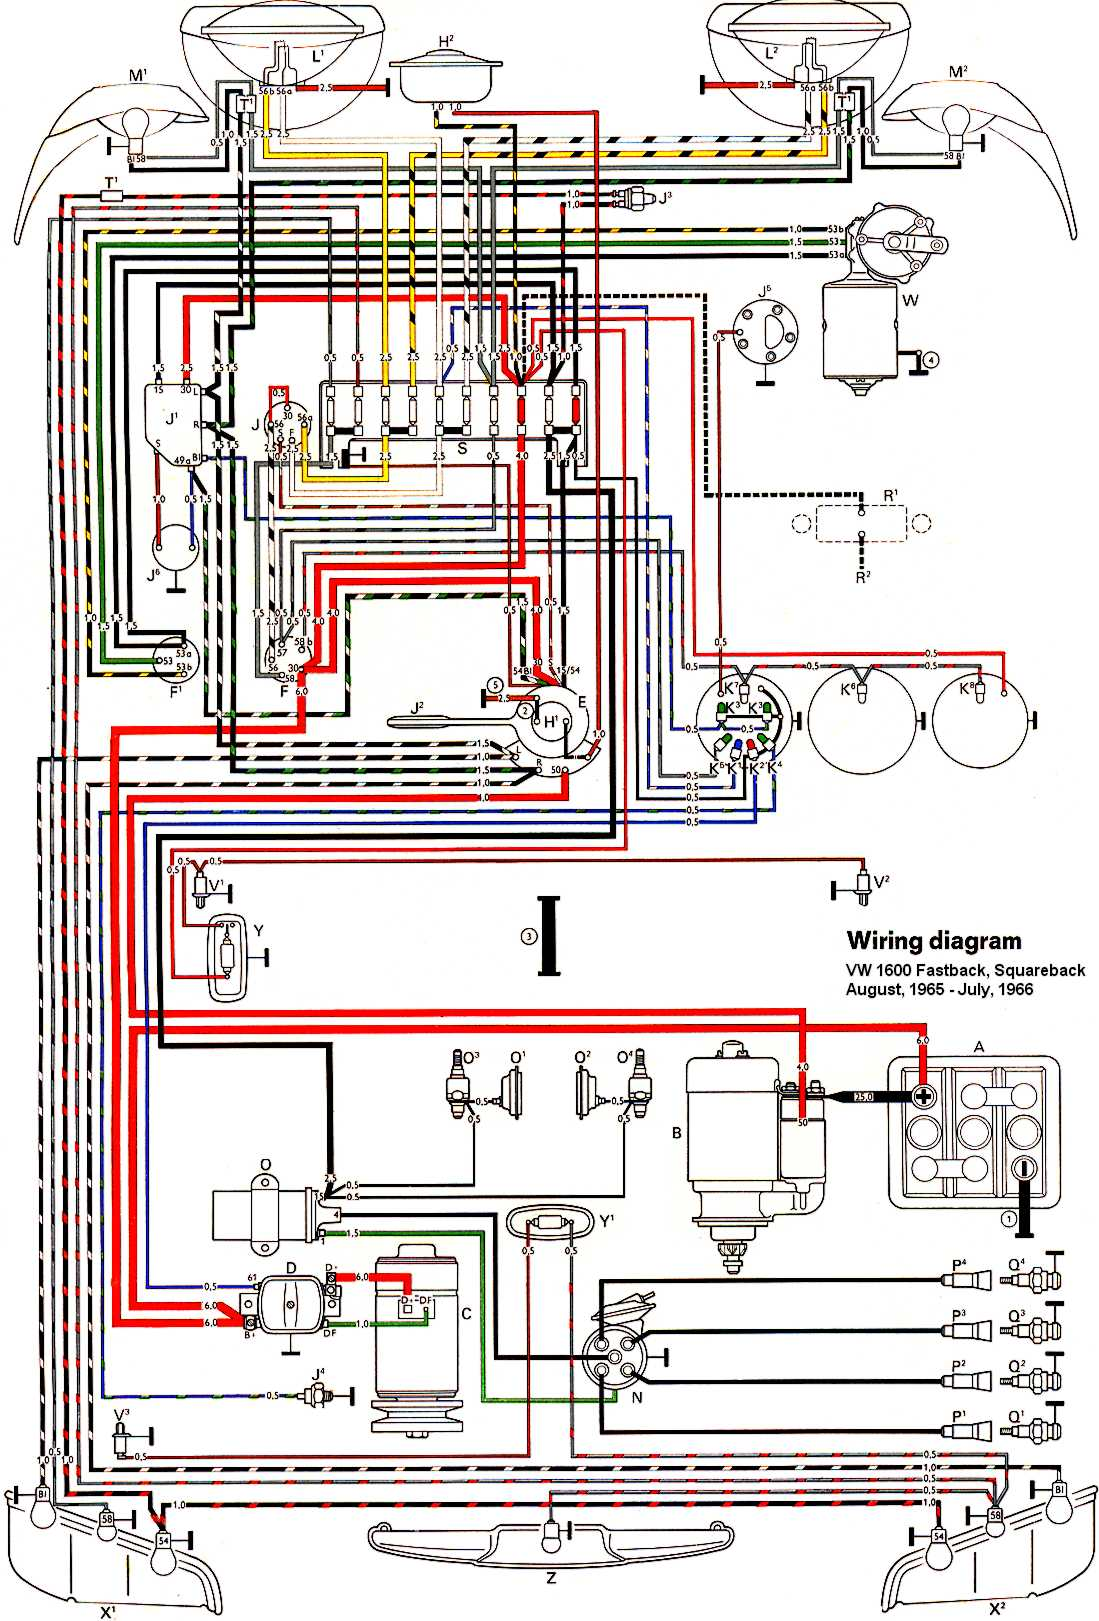 type3_1600_66 73 beetle wiring diagram backup light wiring diagram \u2022 wiring 2000 vw wiring diagrams at eliteediting.co